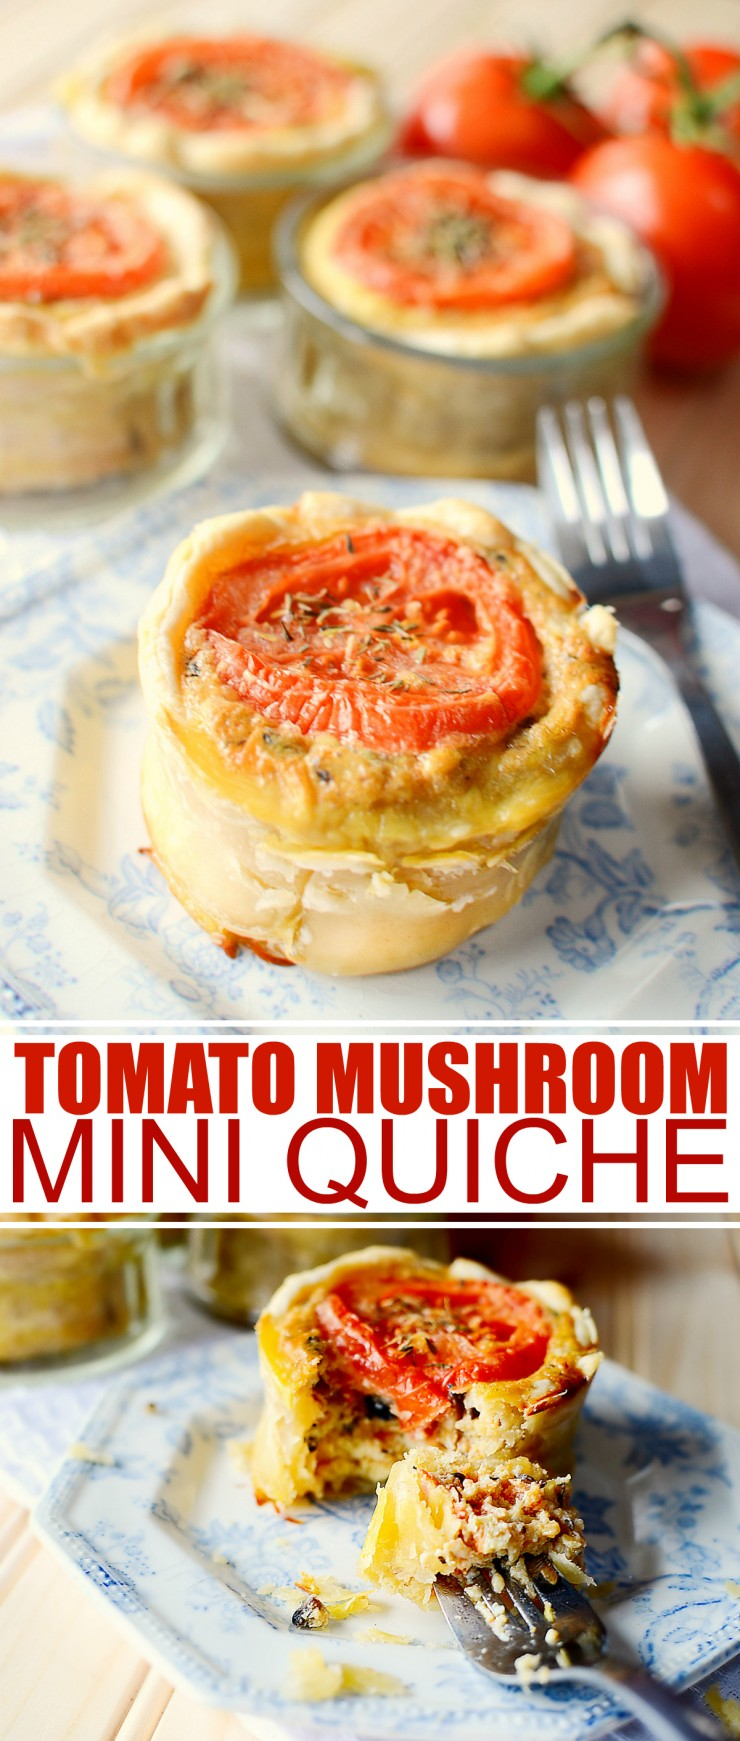 These Tomato Mushroom Mini Quiches make for a delicious lunch or breakfast recipe.  They are even great for serving at parties too!